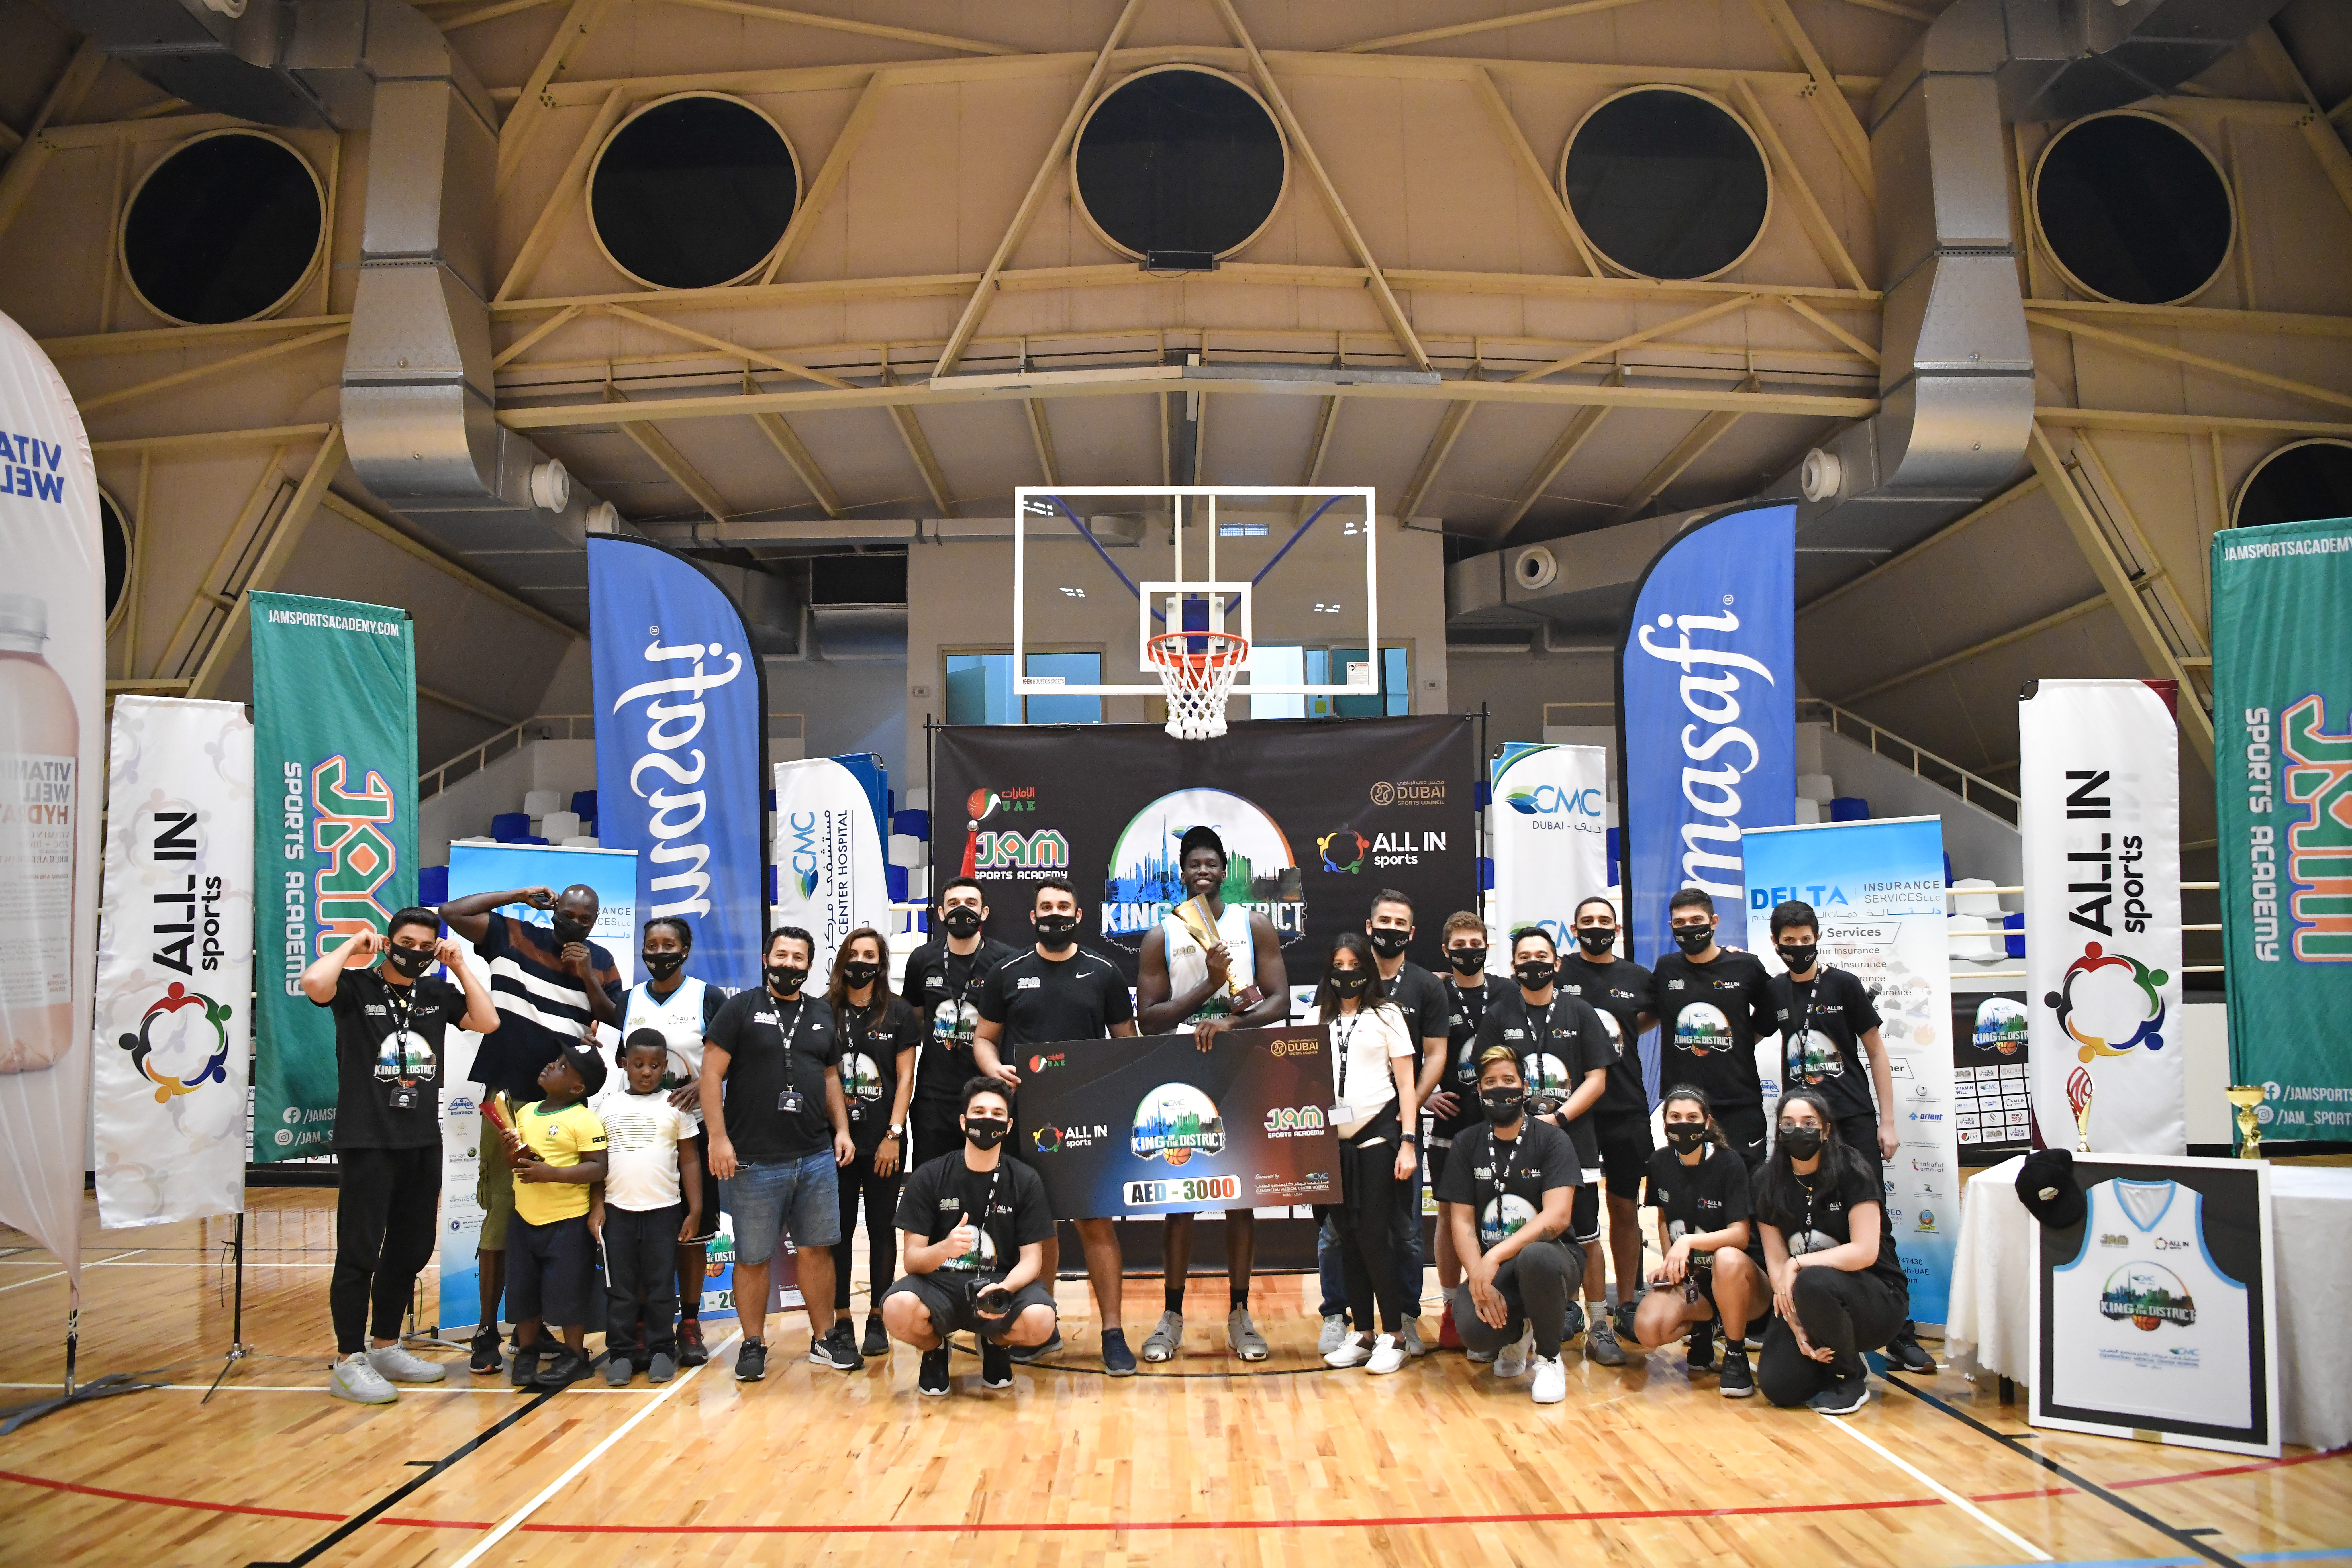 Players and fans flock to the King Of the District 2.1 Basketball event held in Dubai